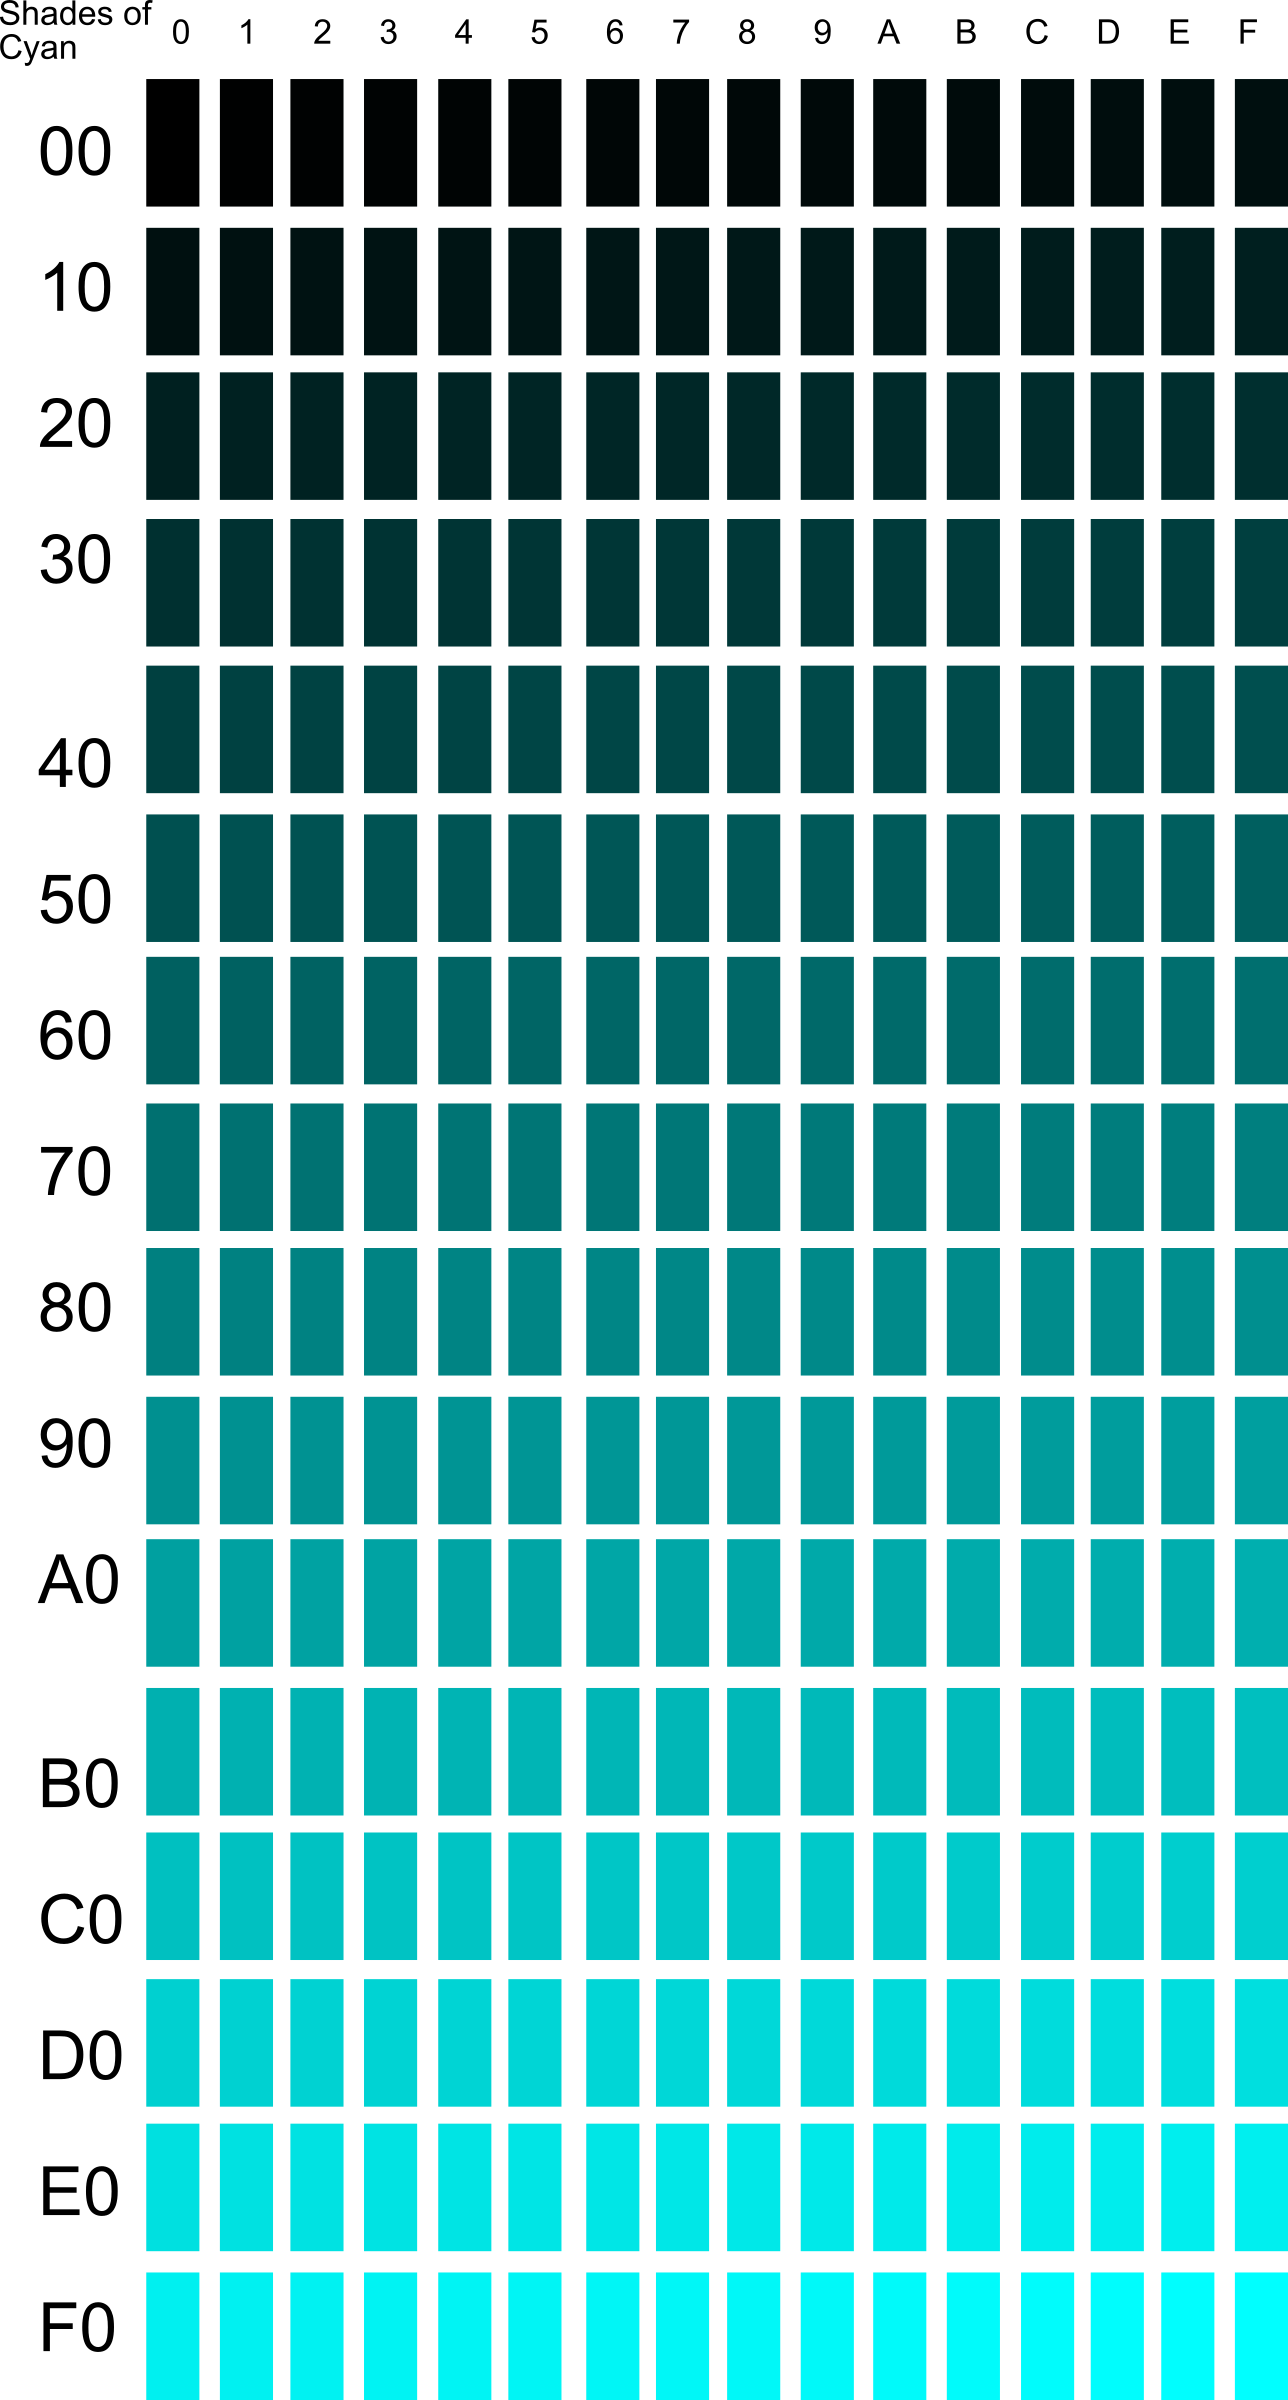 Shades of Cyan by Rfc1394